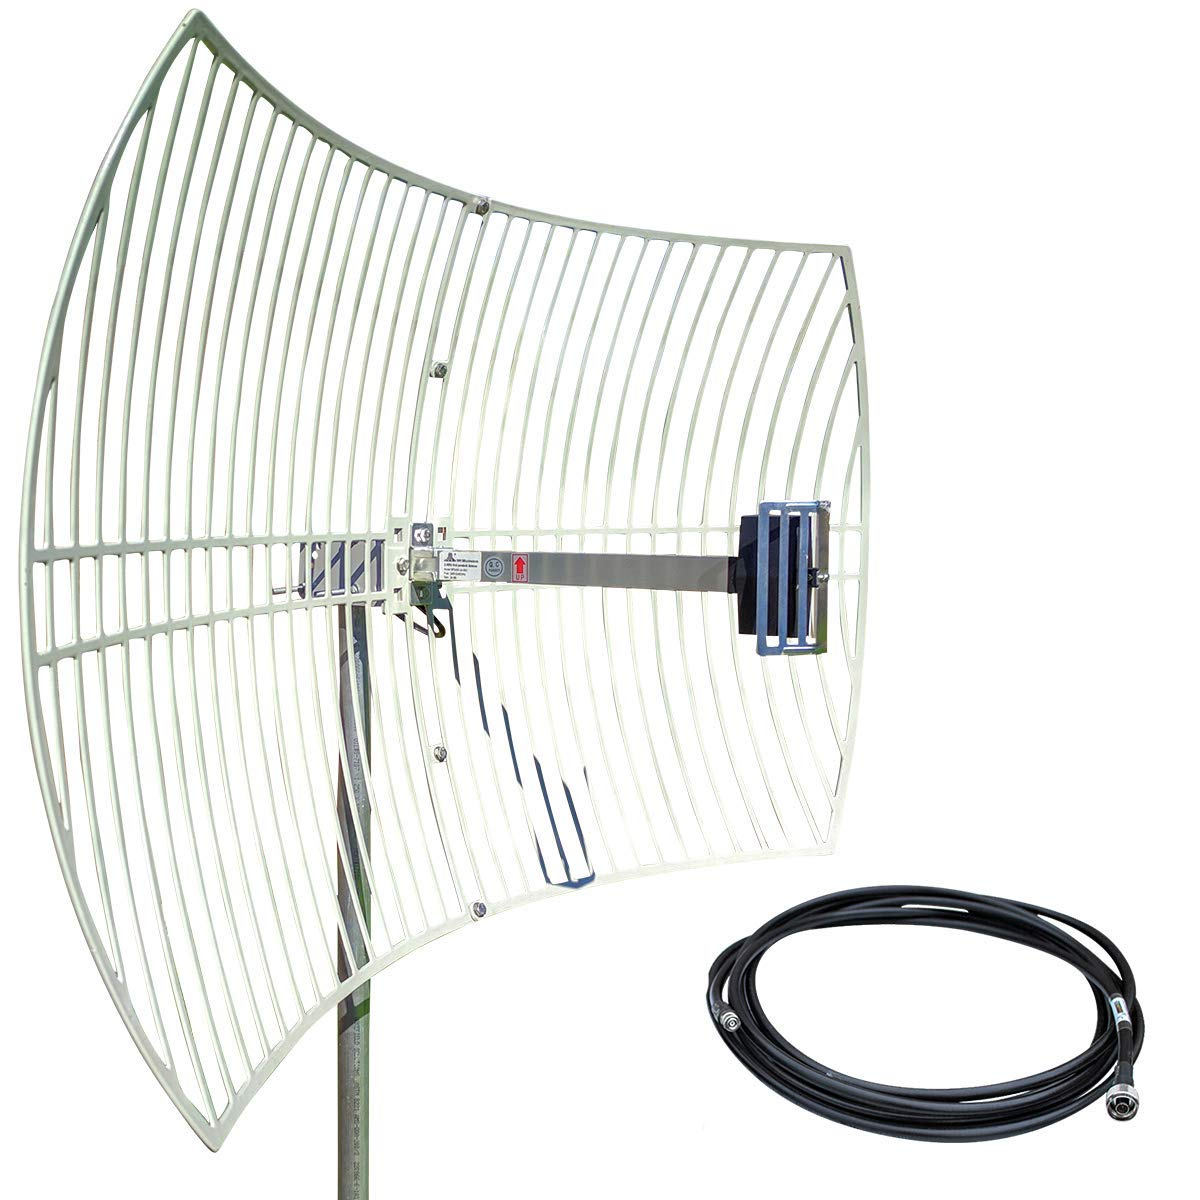 Cheap Antenna Range, find Antenna Range deals on line at Alibaba com